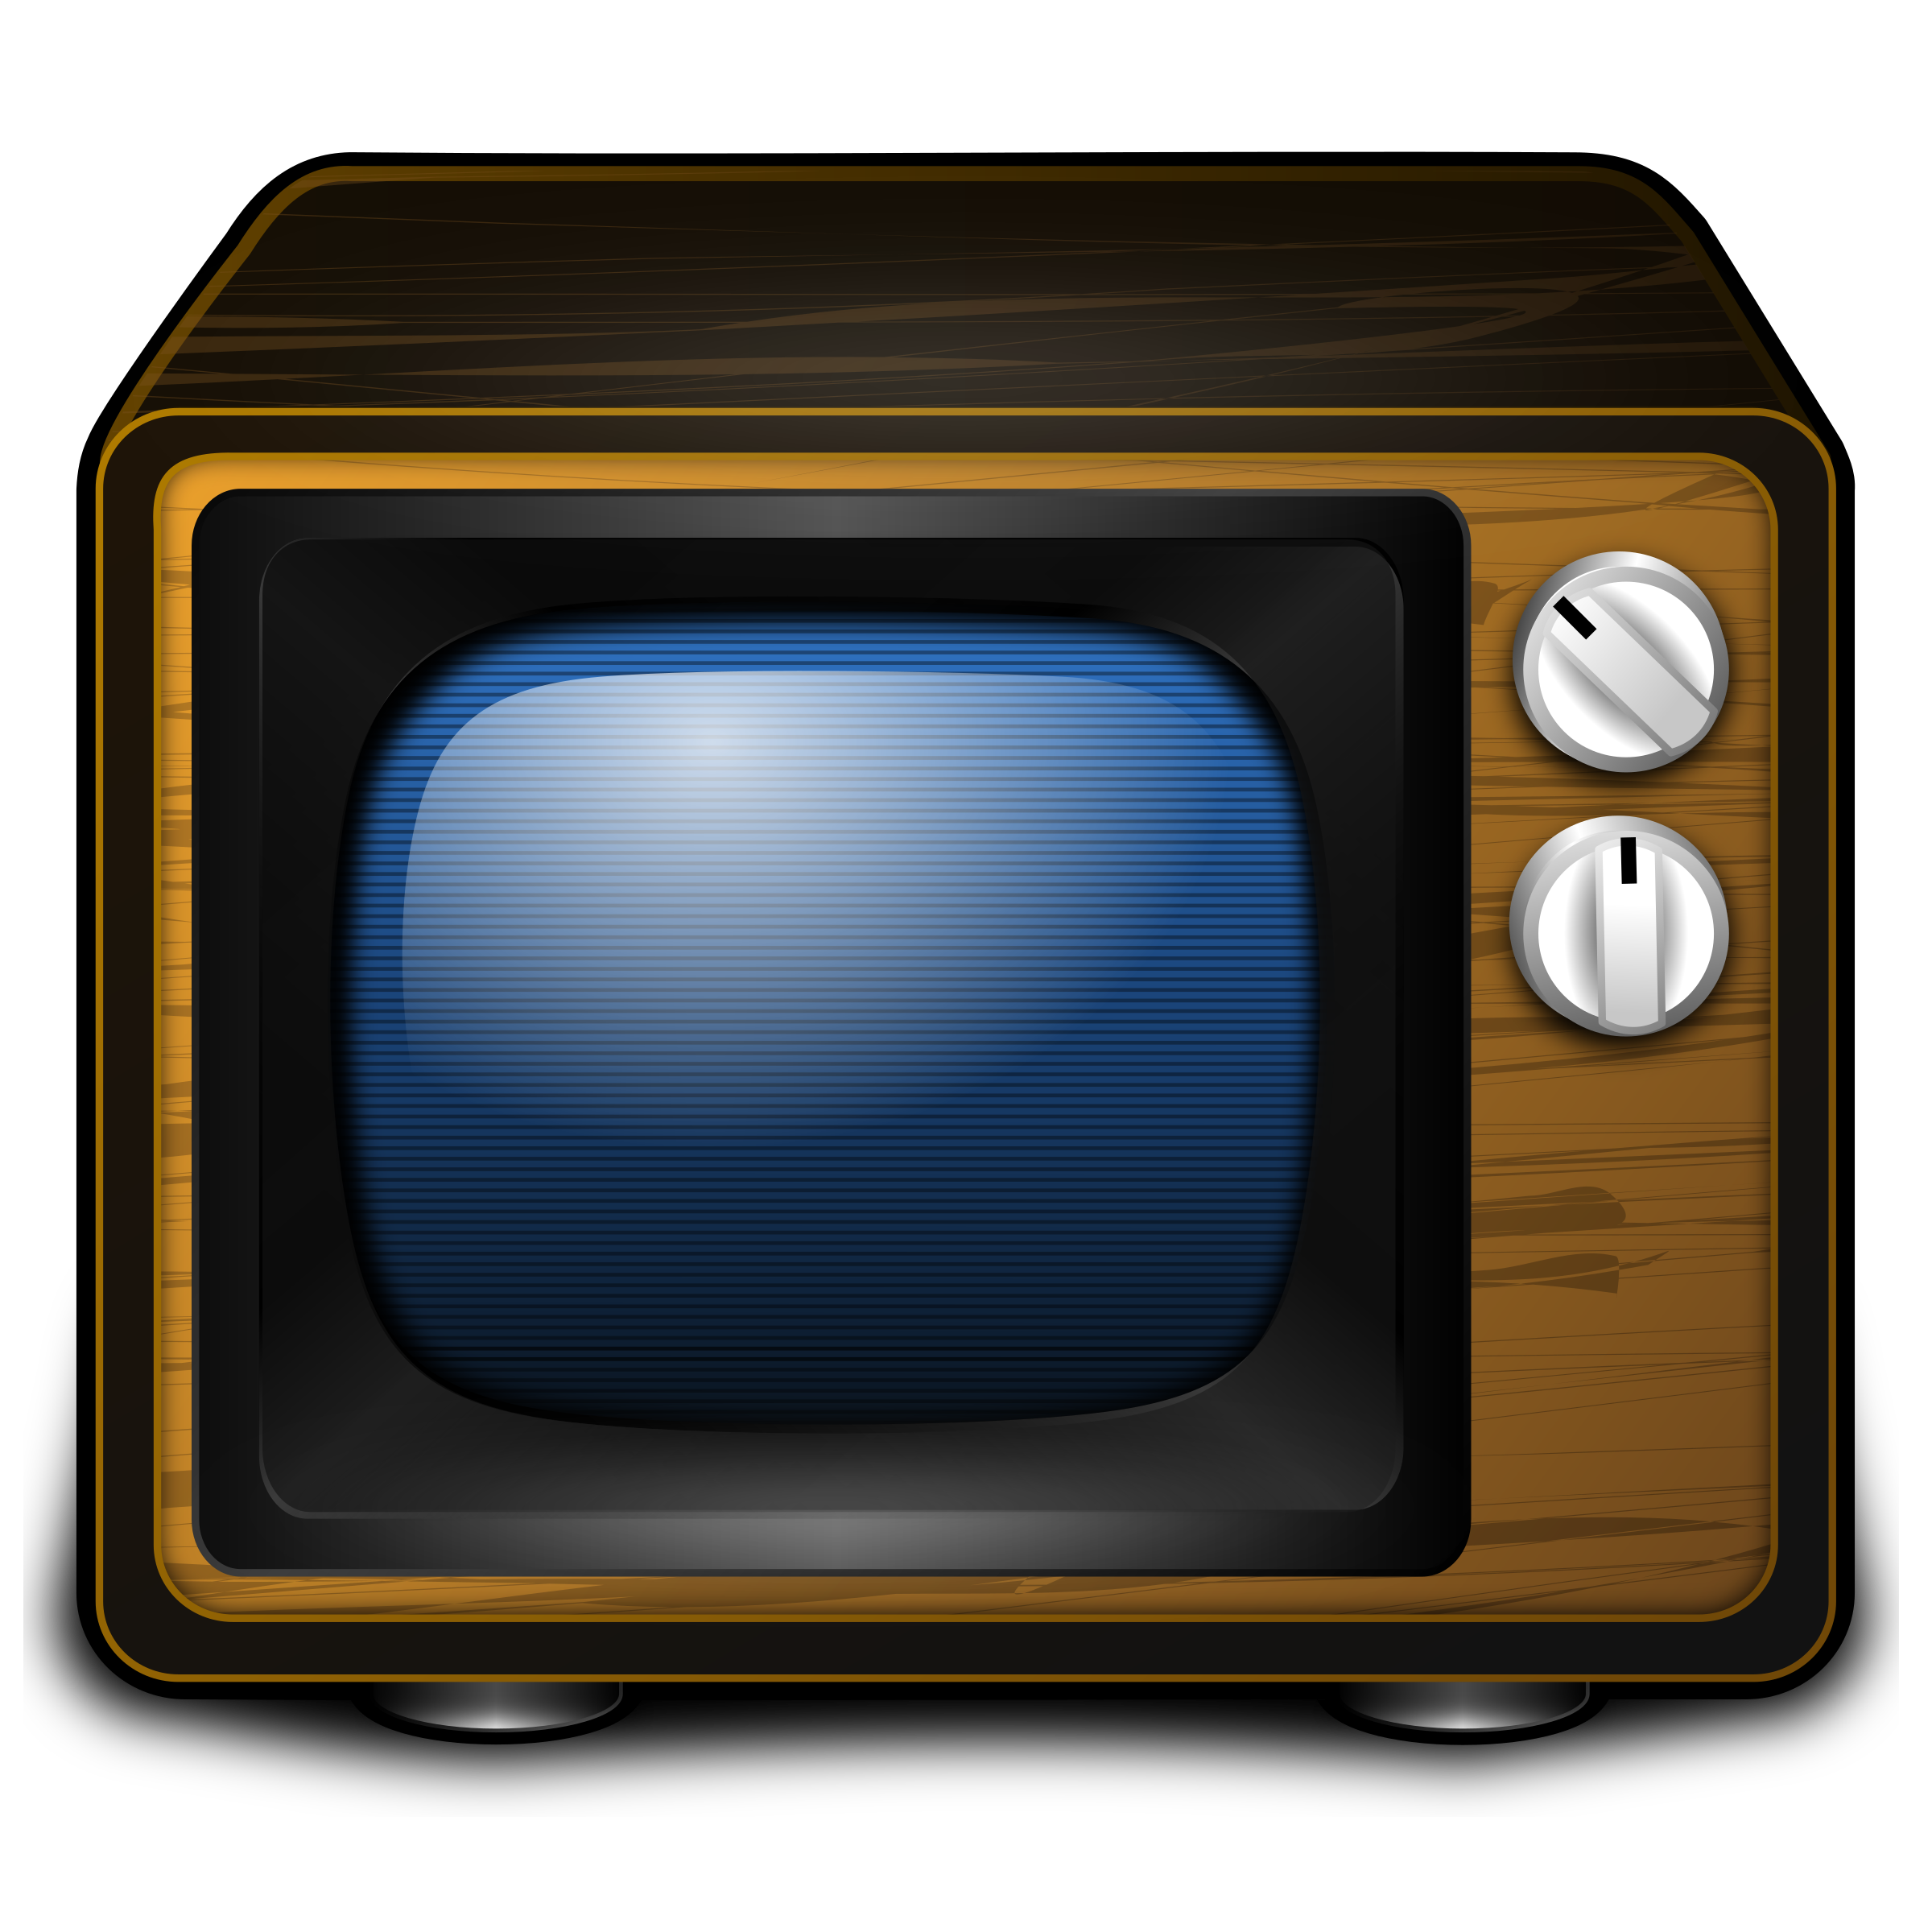 Television clipart old school. Tv big image png